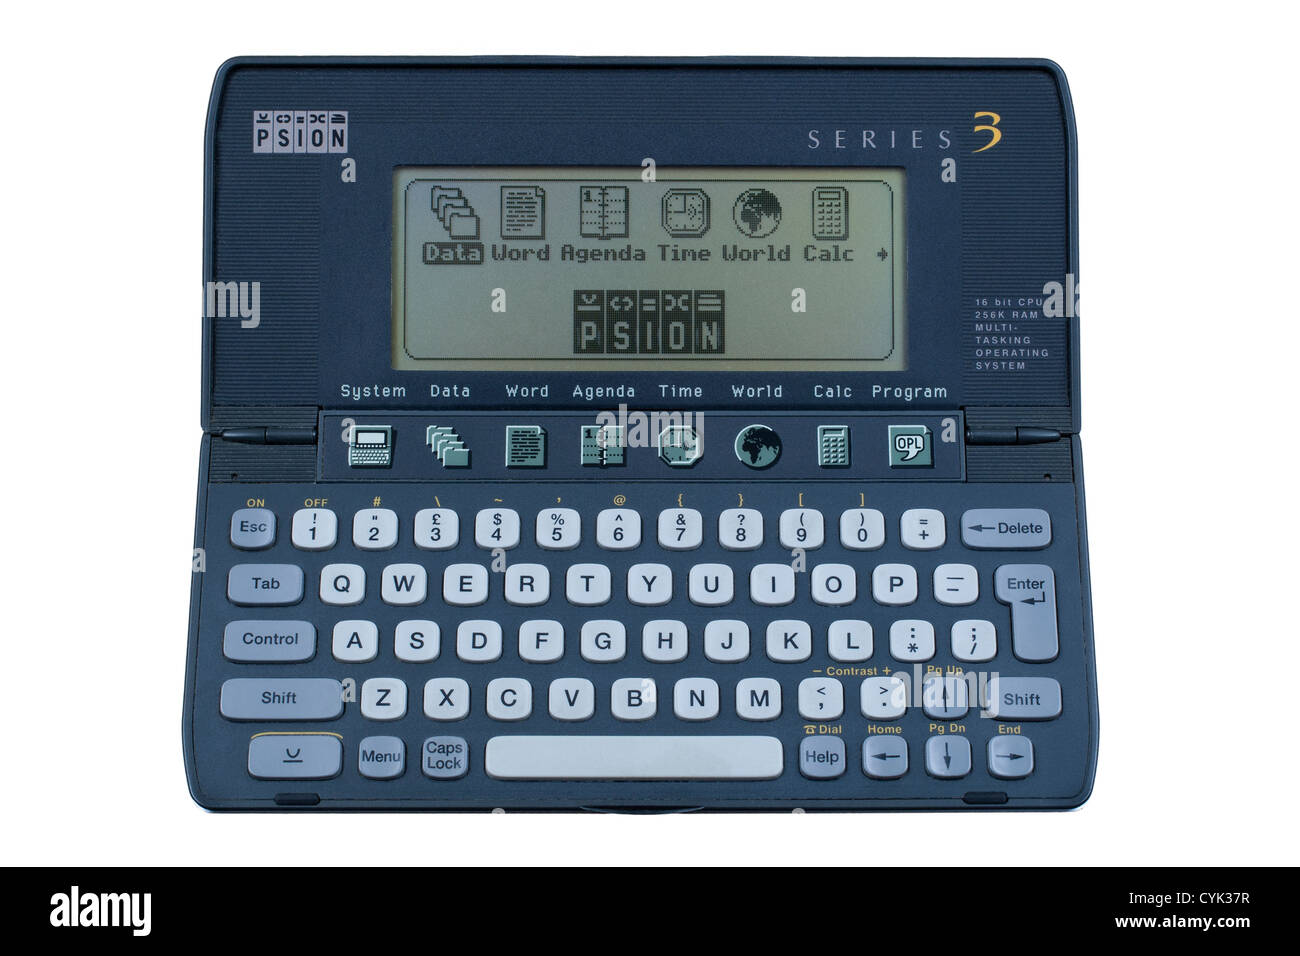 Psion 3 Organiser a hand-held pocket computer - Stock Image